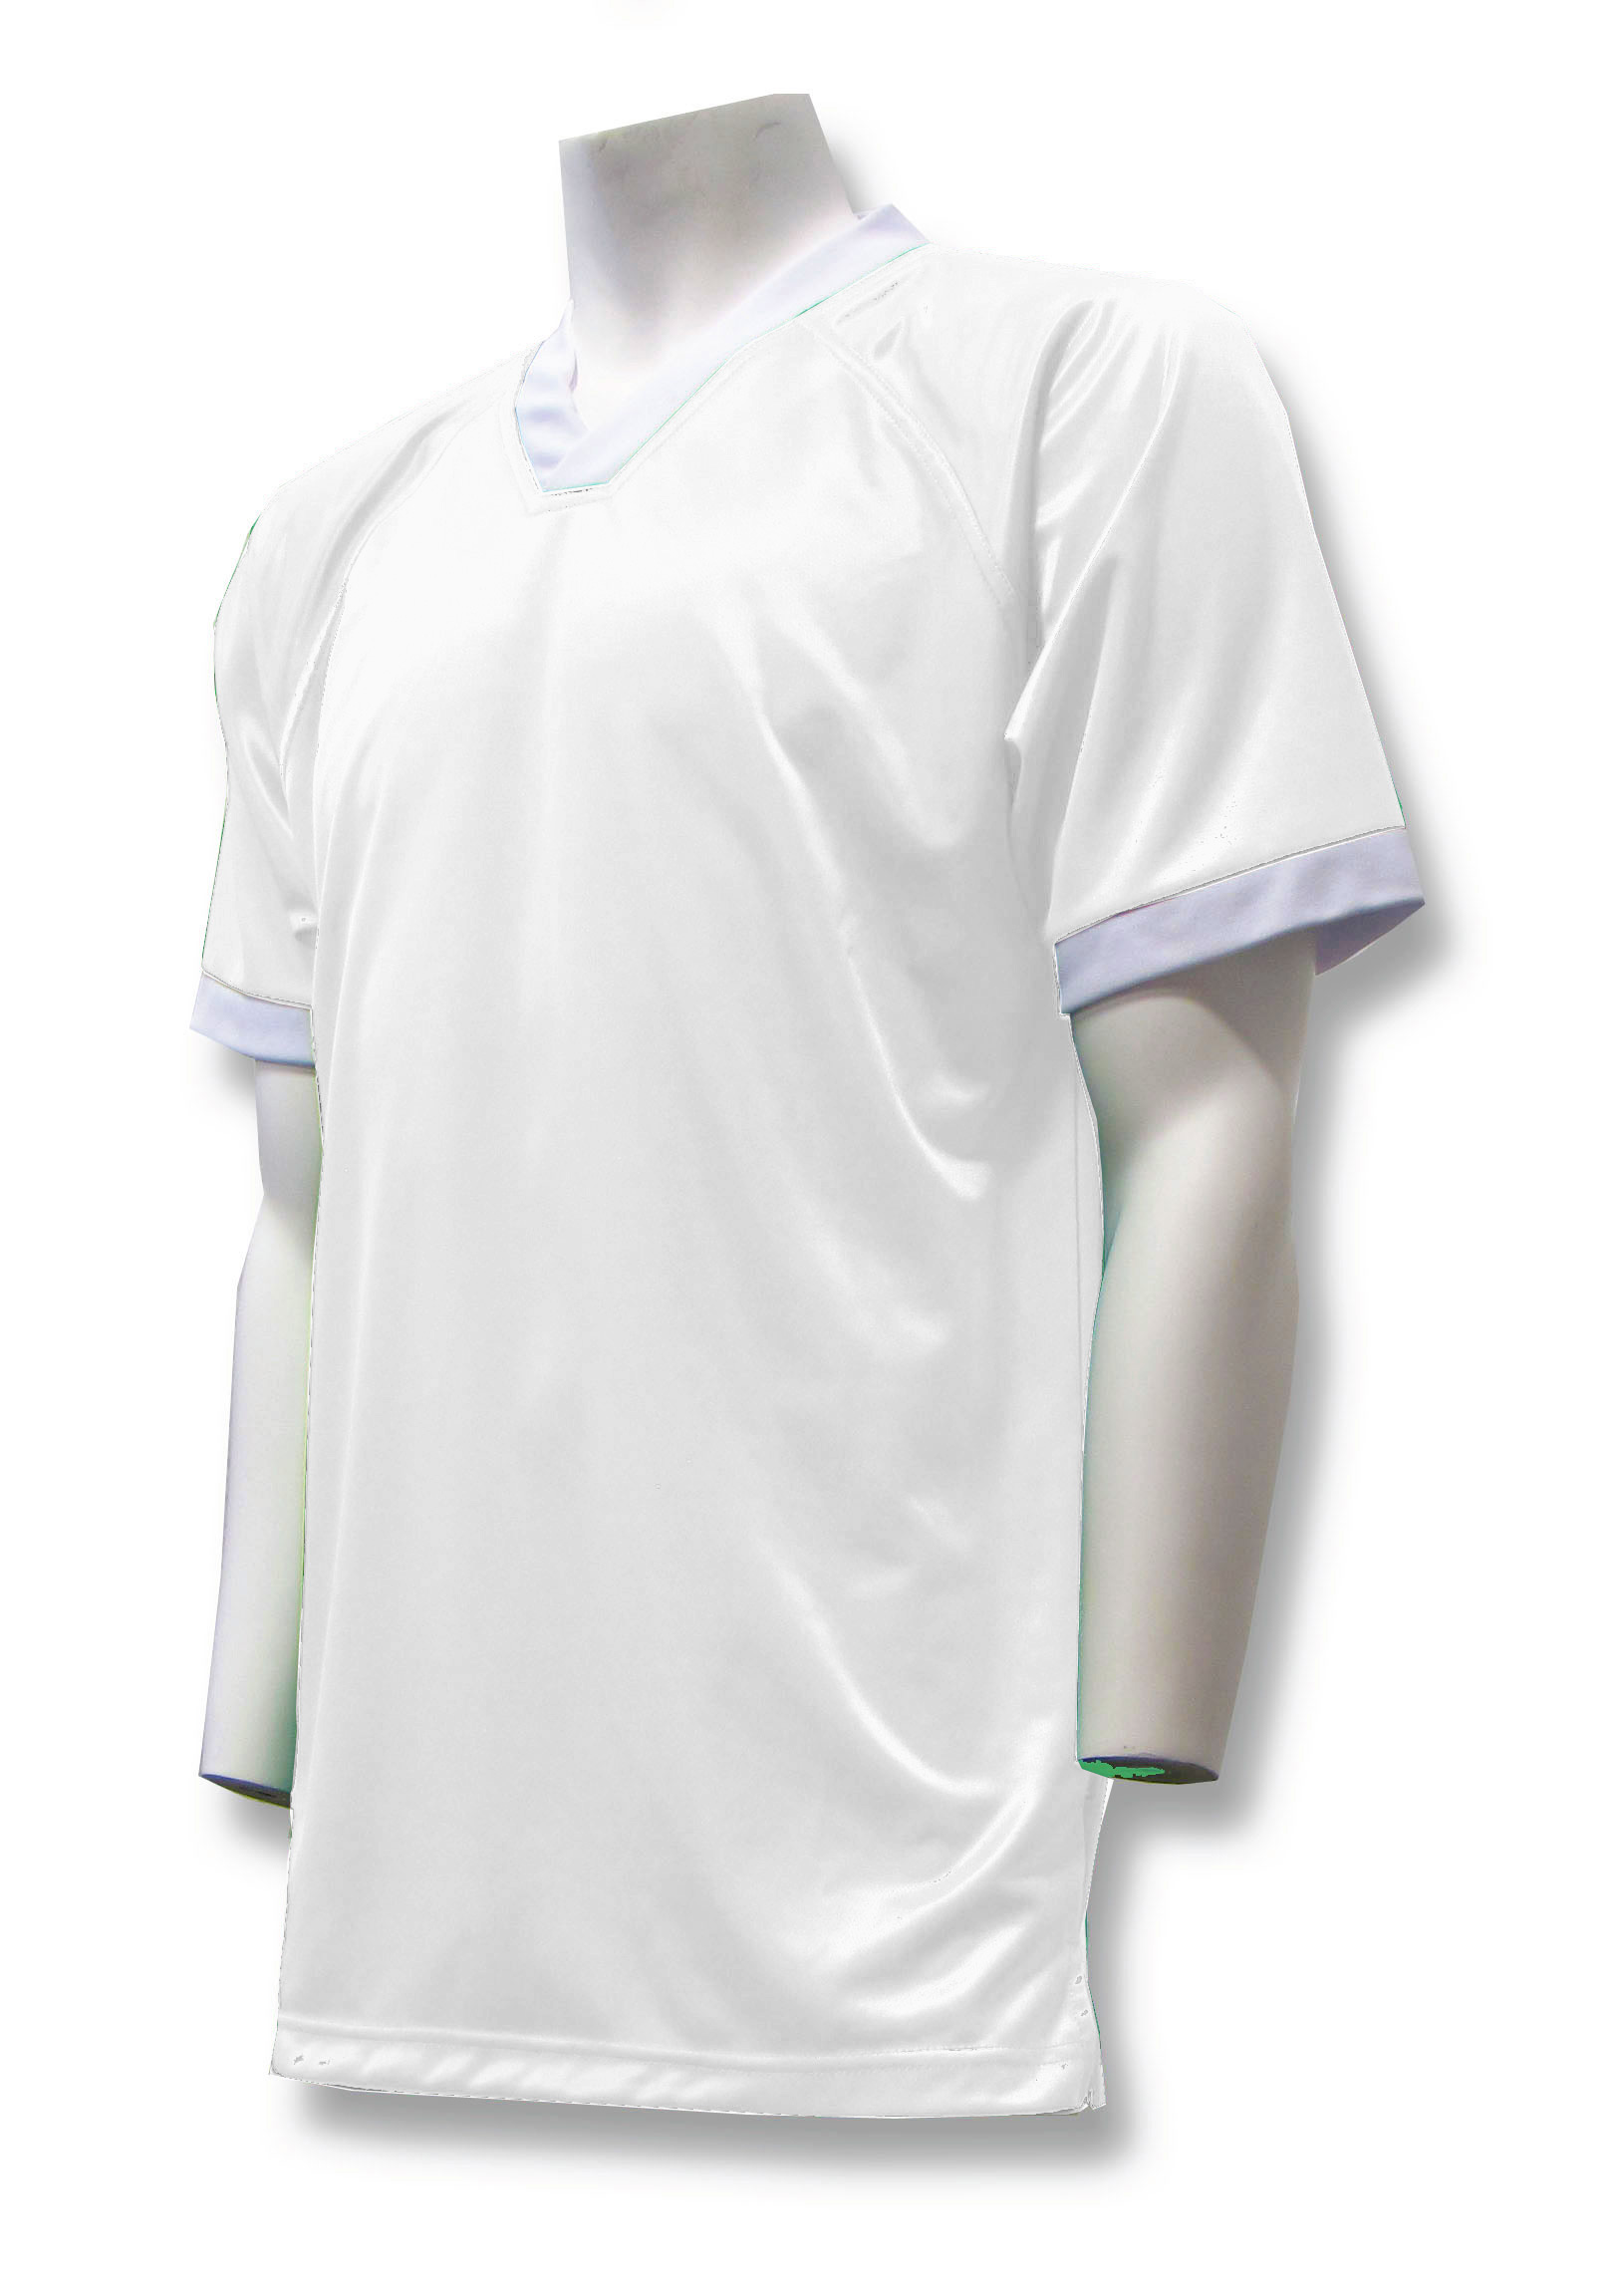 Pioneer soccer jersey in white by Code Four Athletics